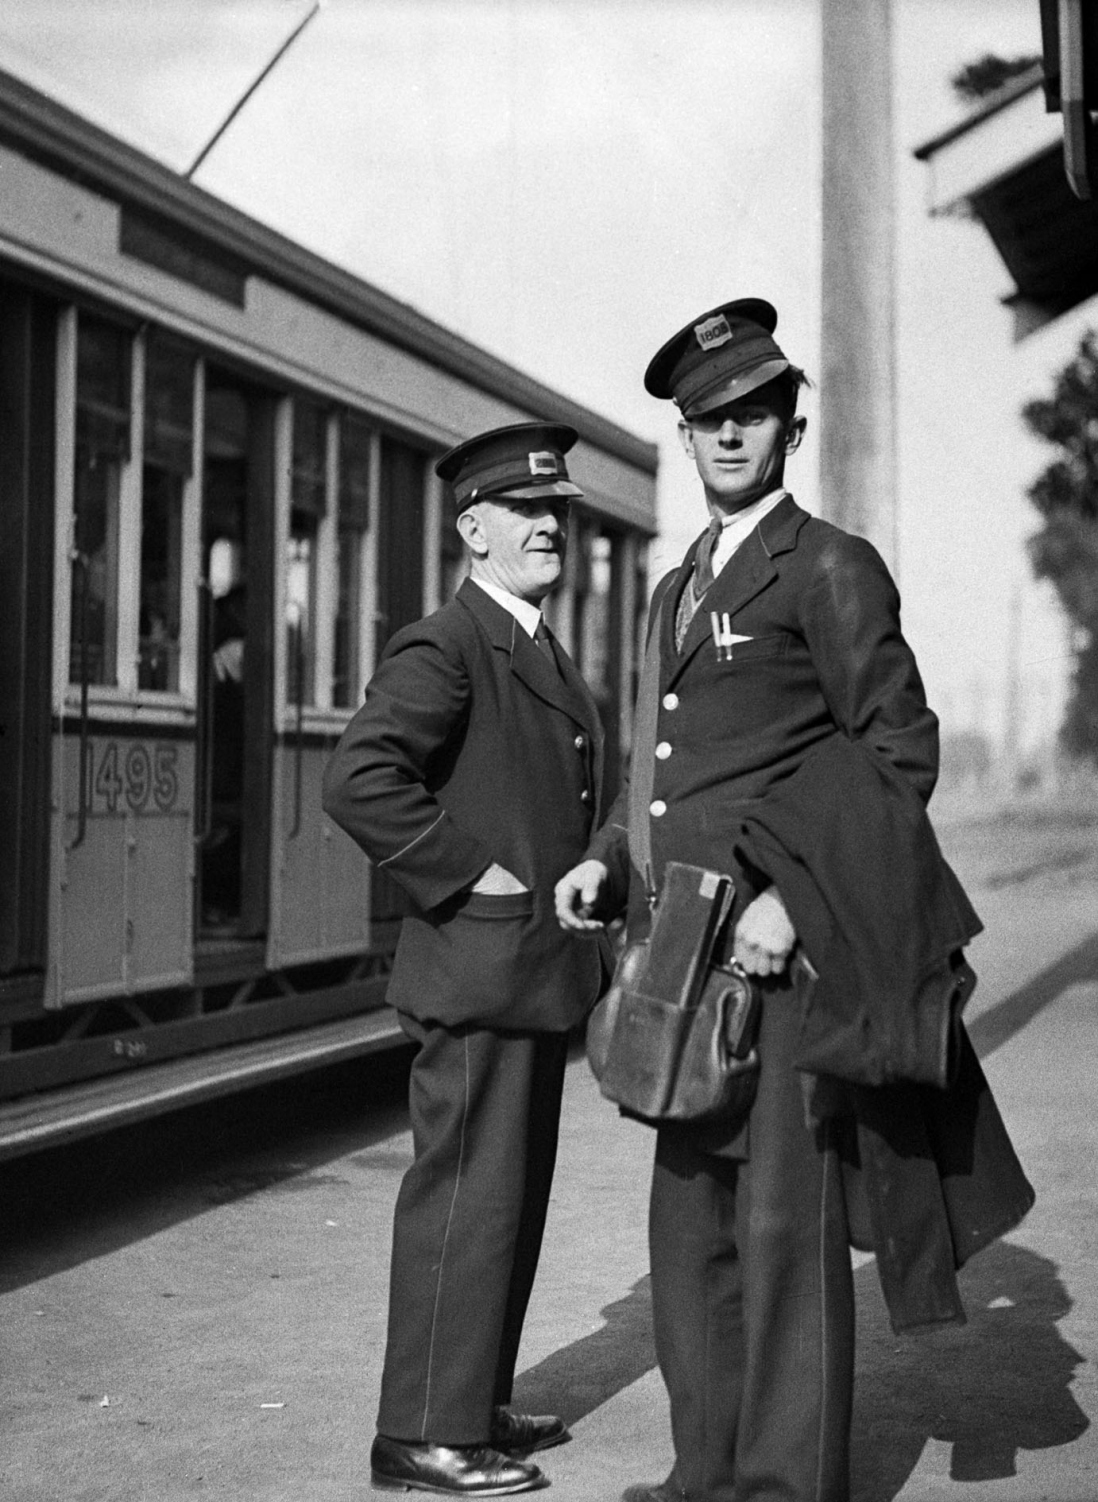 Two uniformed tram way men stand on the street beside a tram. One carries leather bag on his shoulder.